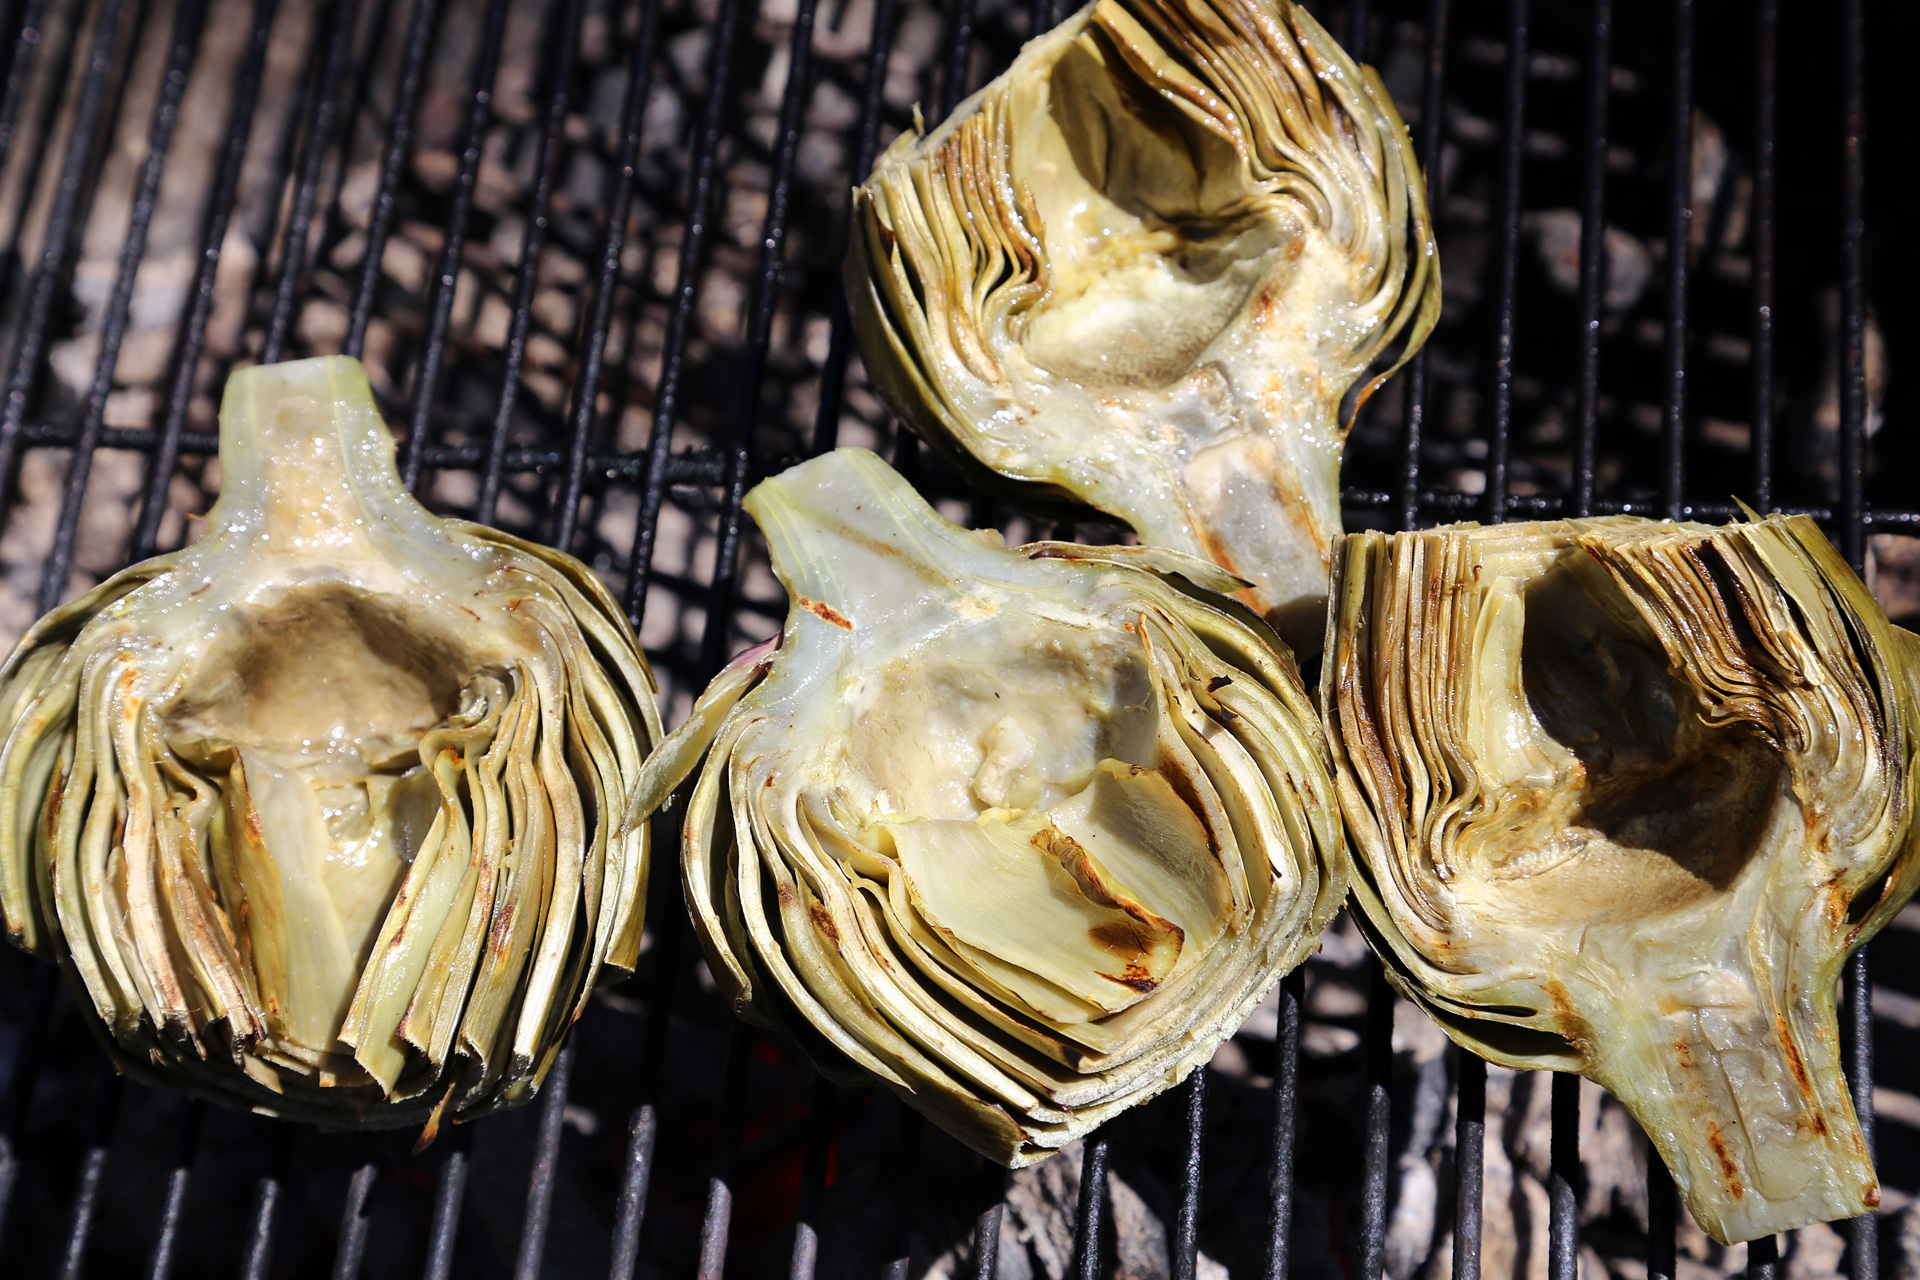 Brush the grill grate with oil. Brush the artichokes all over with the oil and season with salt. Grill, turning occasionally.